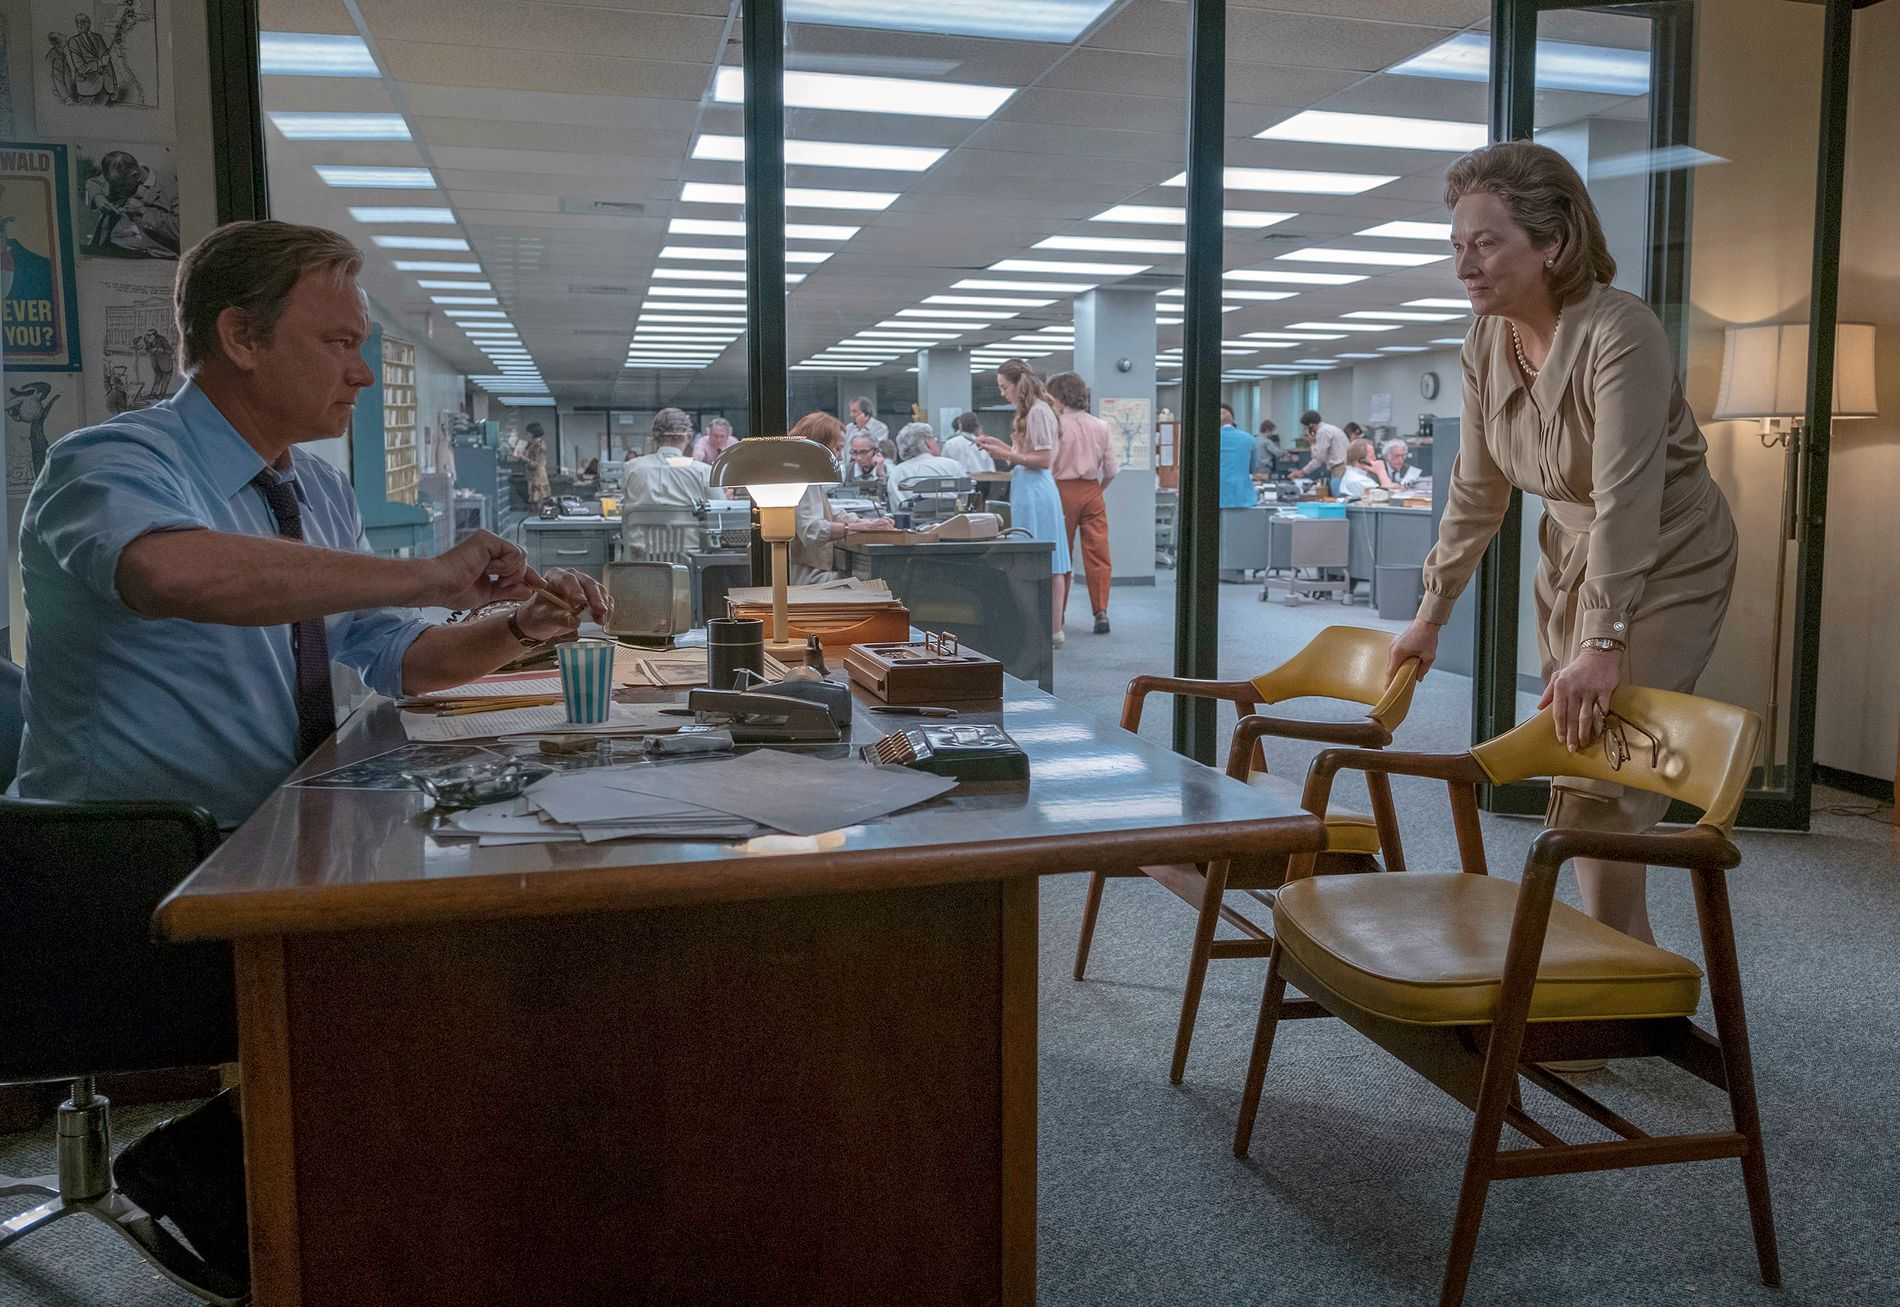 DOBBELNOMINERT: Både Tom Hanks og Meryl Streep er nominert for rollene sine i Spielberg-filmen «The Post» som kommer 12. januar. Fotyo: Niko Tavernise/20th Century Fox/AP